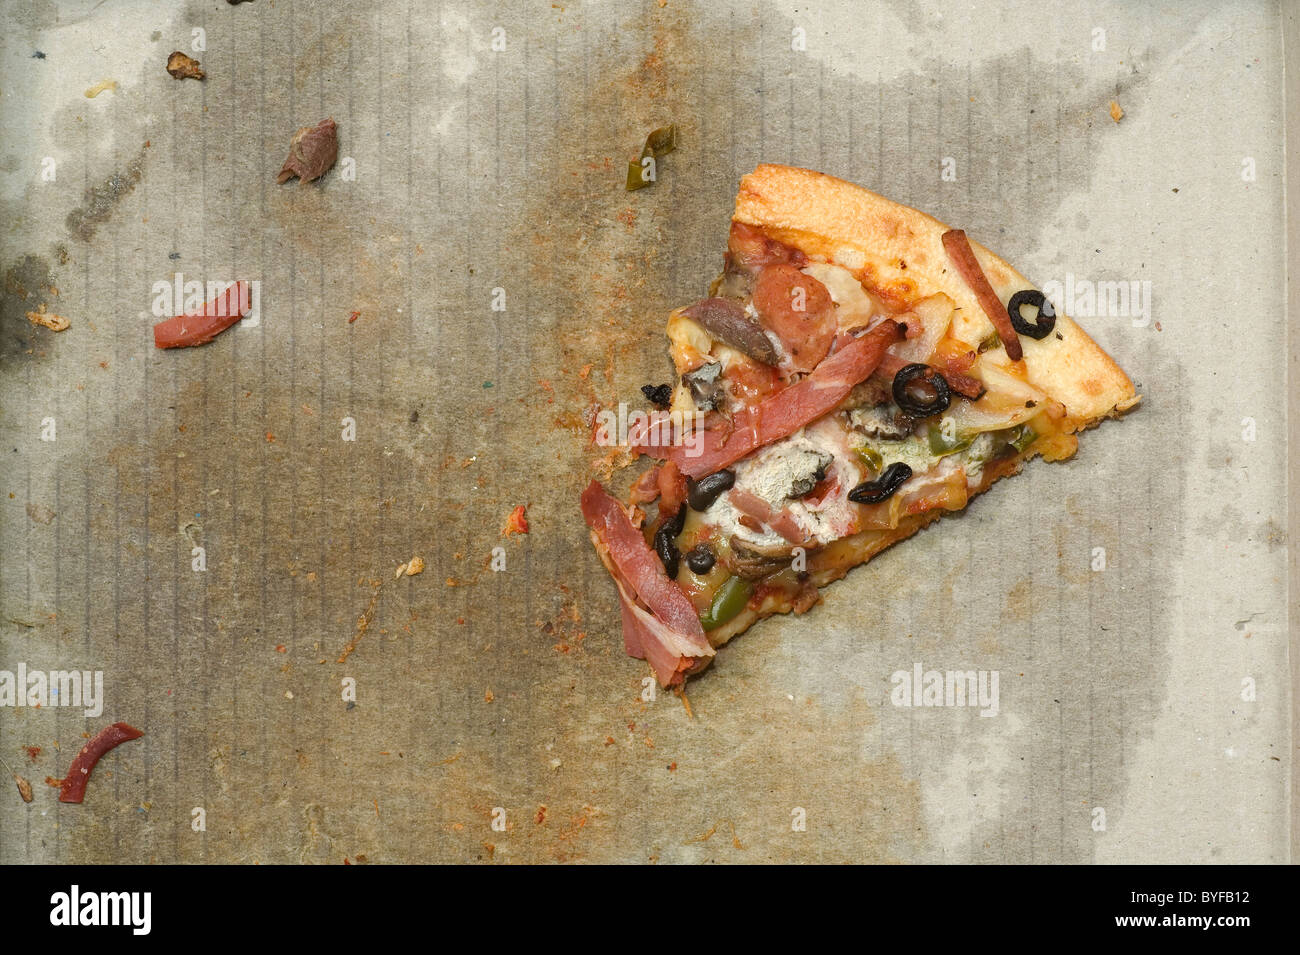 A slice of cold greasy and mouldy pizza in an old pizza box. - Stock Image